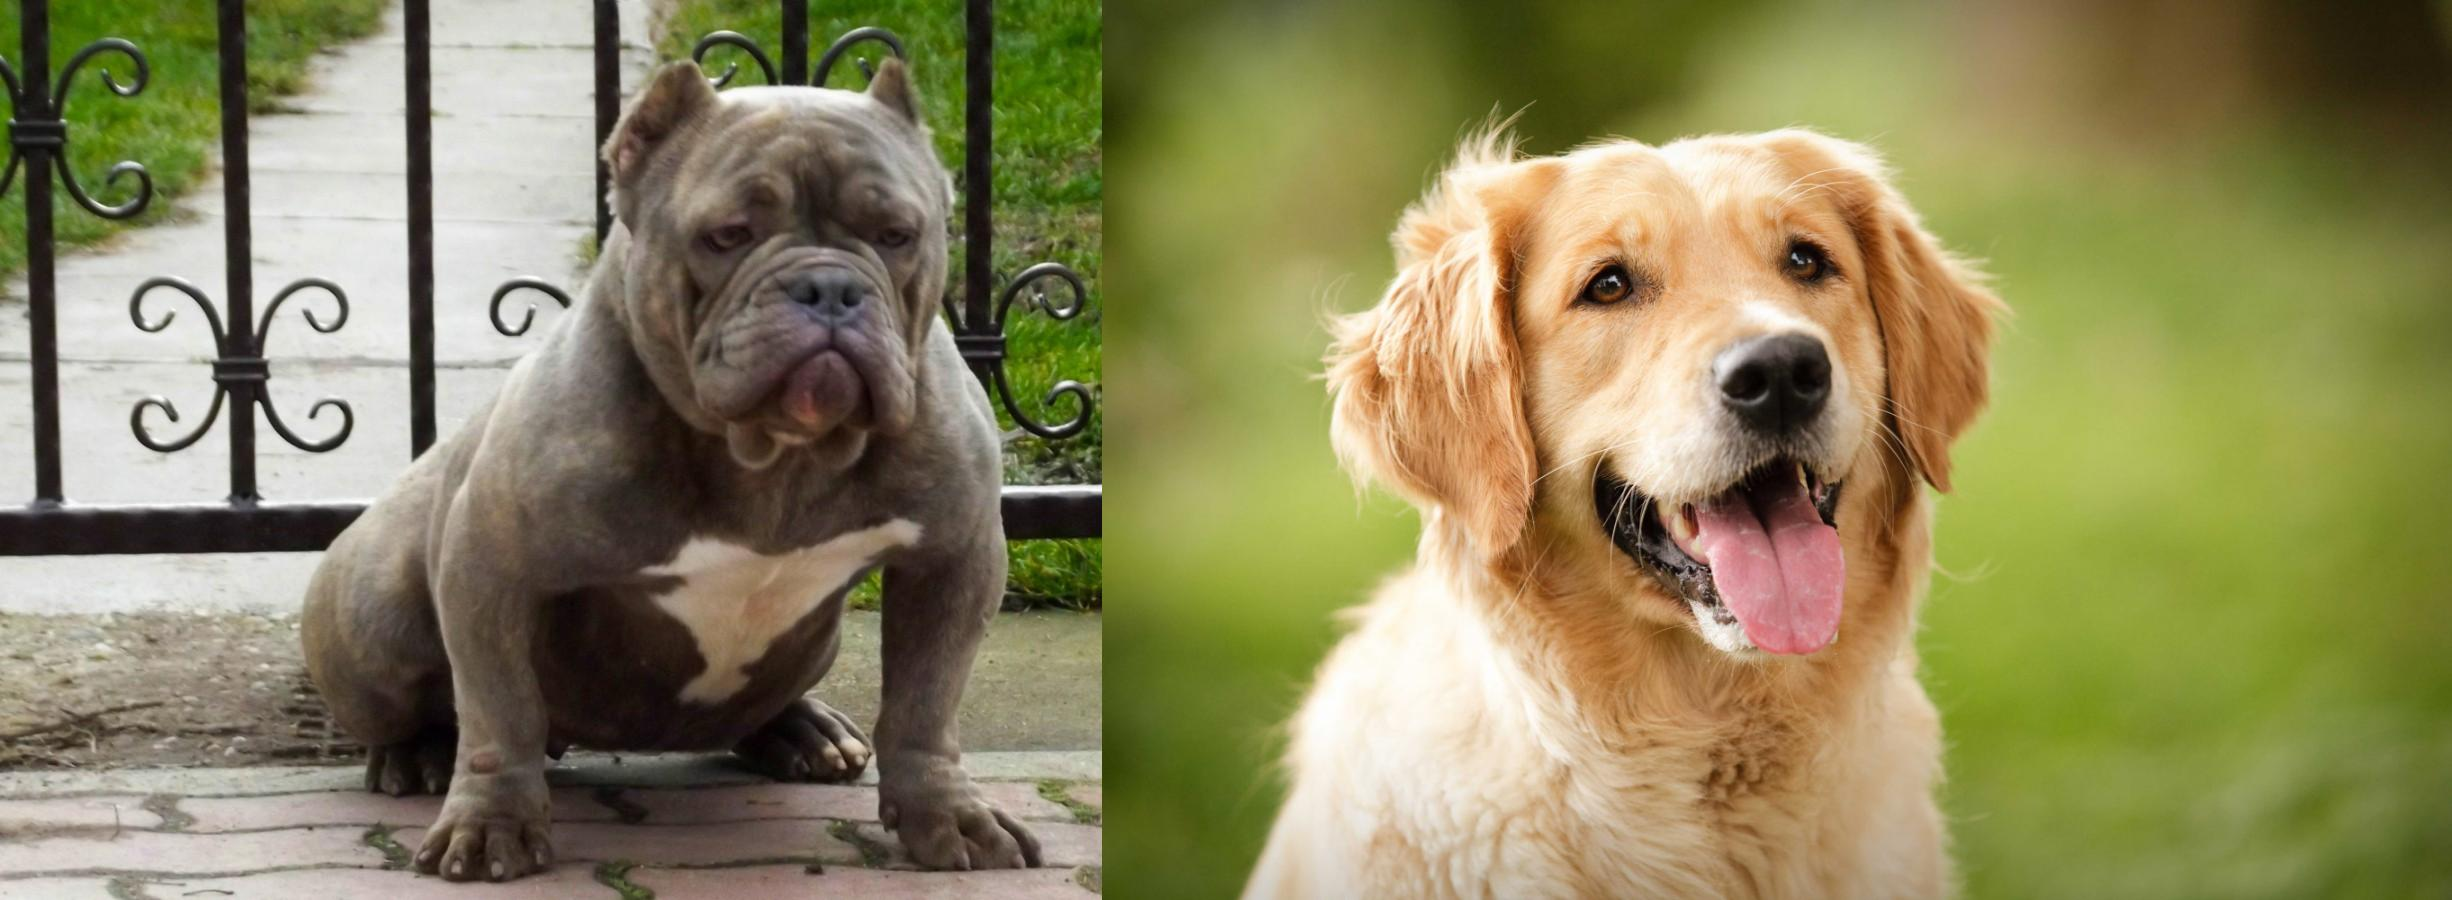 American Bully vs Golden Retriever - Breed Comparison